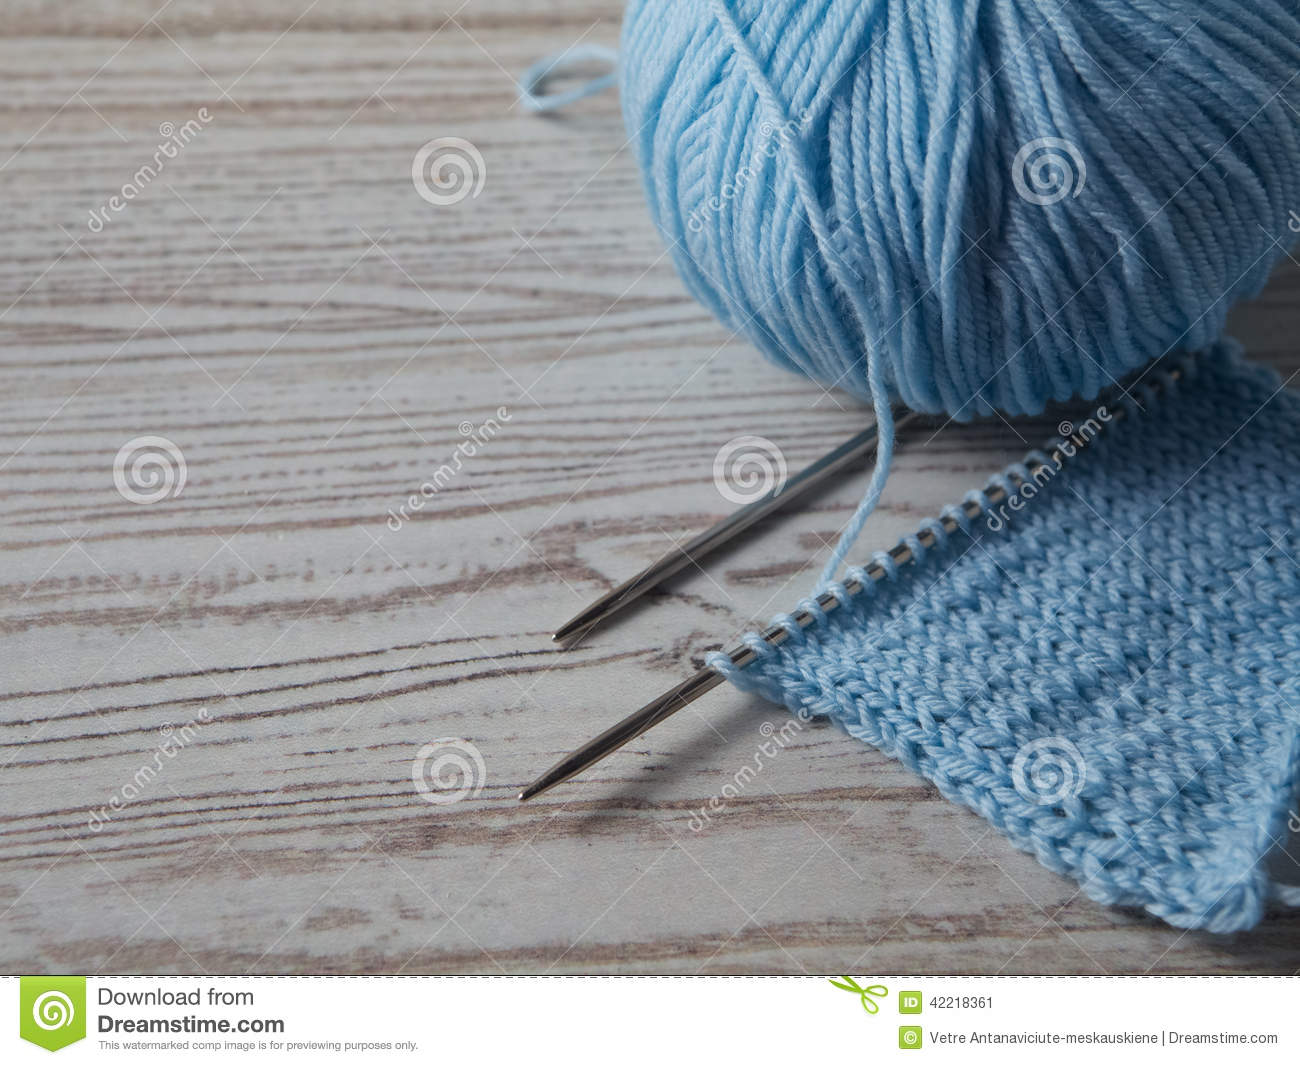 Ball of yarn and knitting on a table for Table knitting